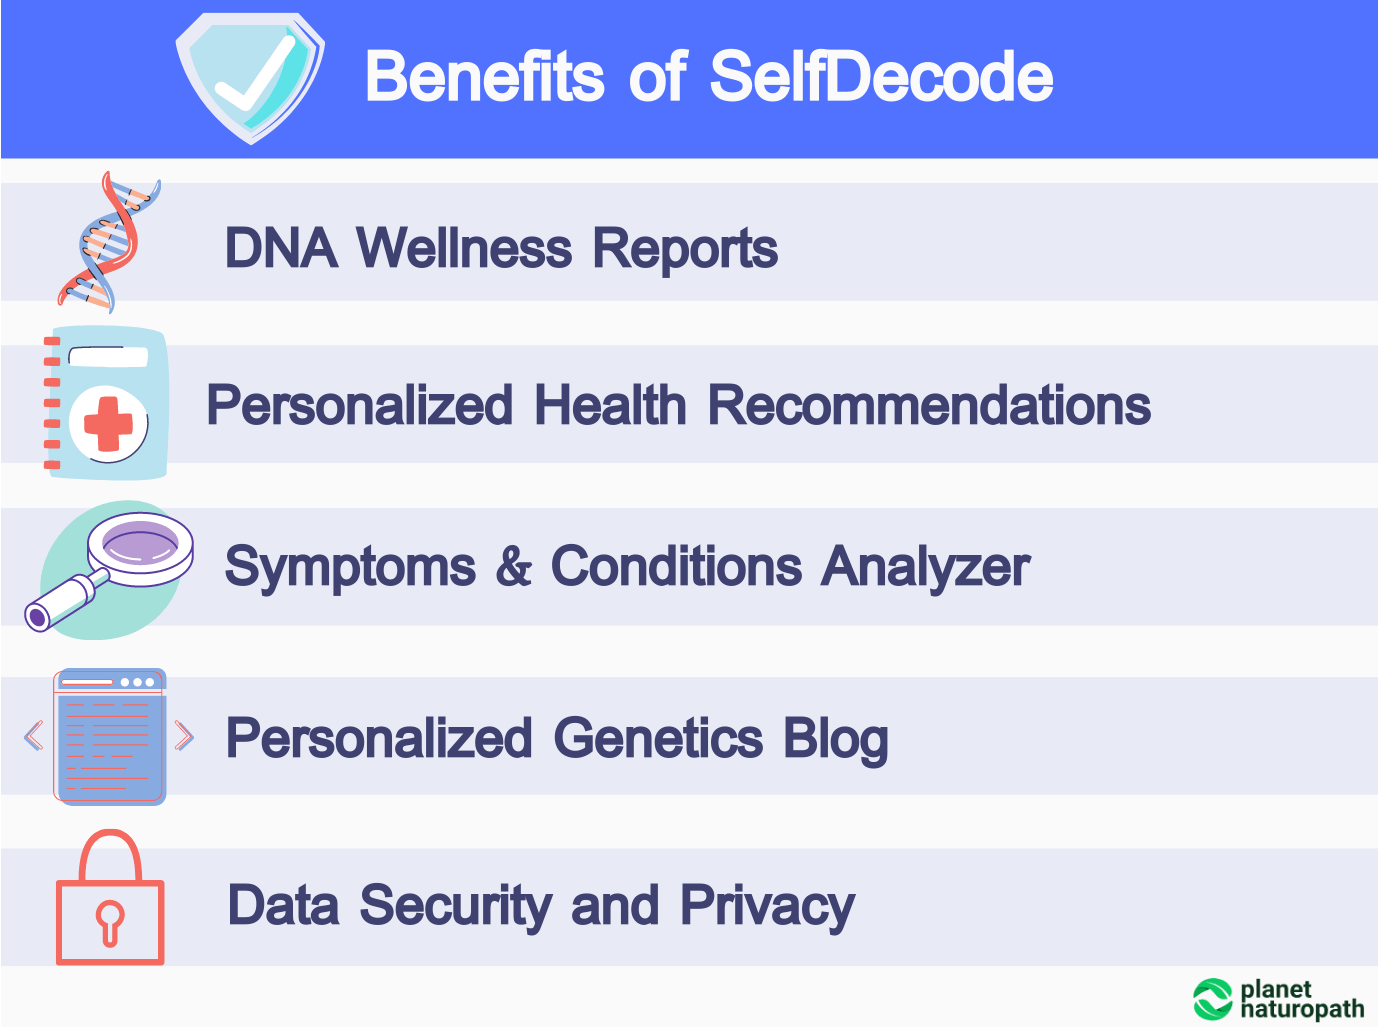 Benefits-of-SelfDecode